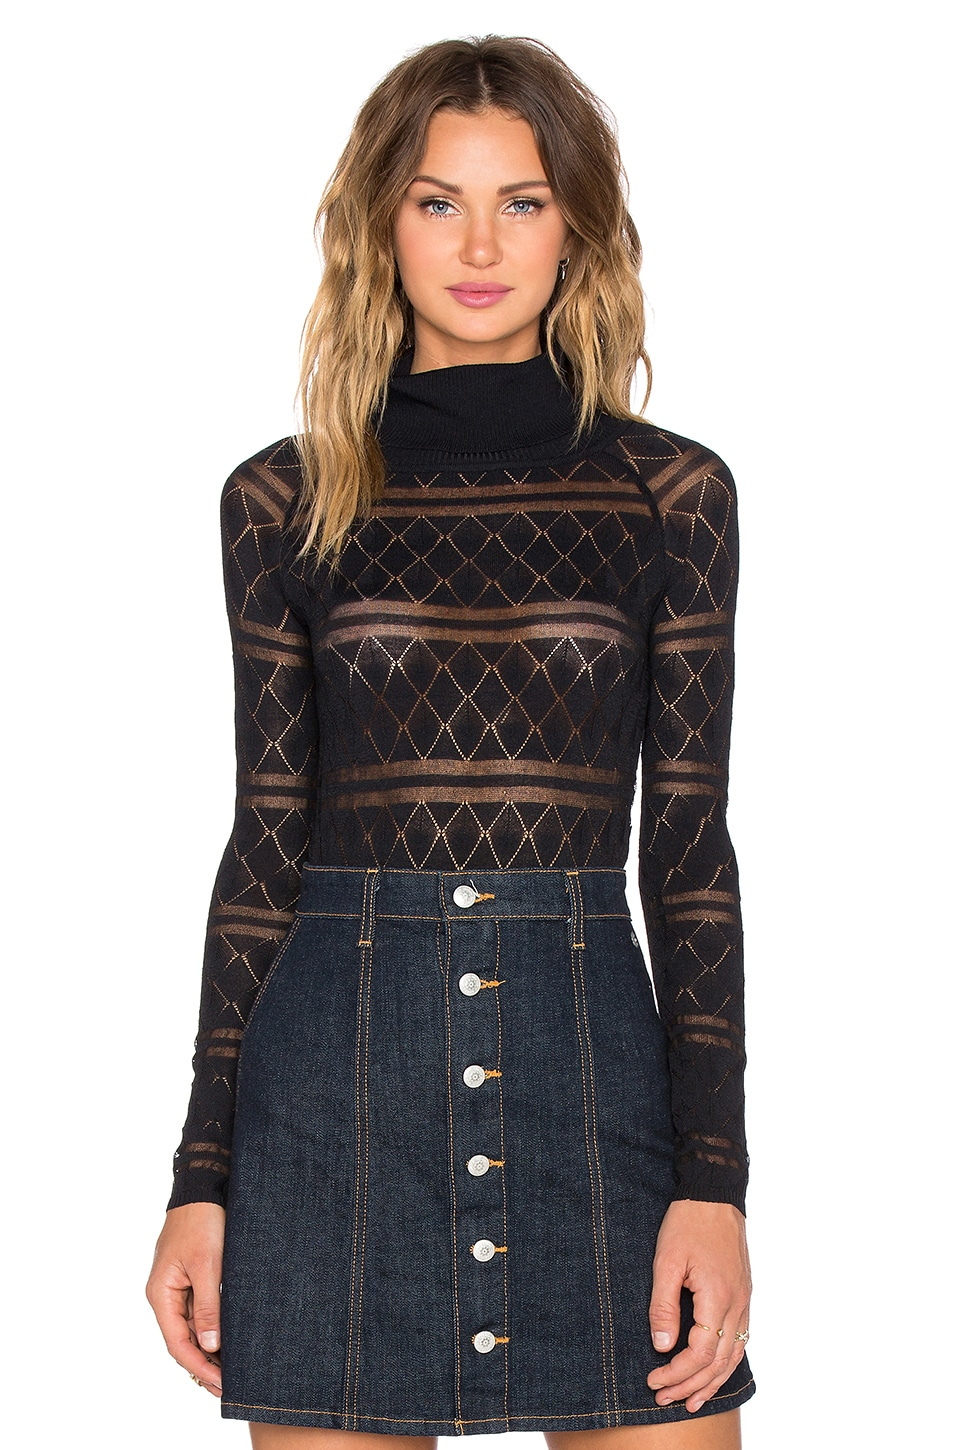 For Love & Lemons Stevie Knit Bodysuit in Black